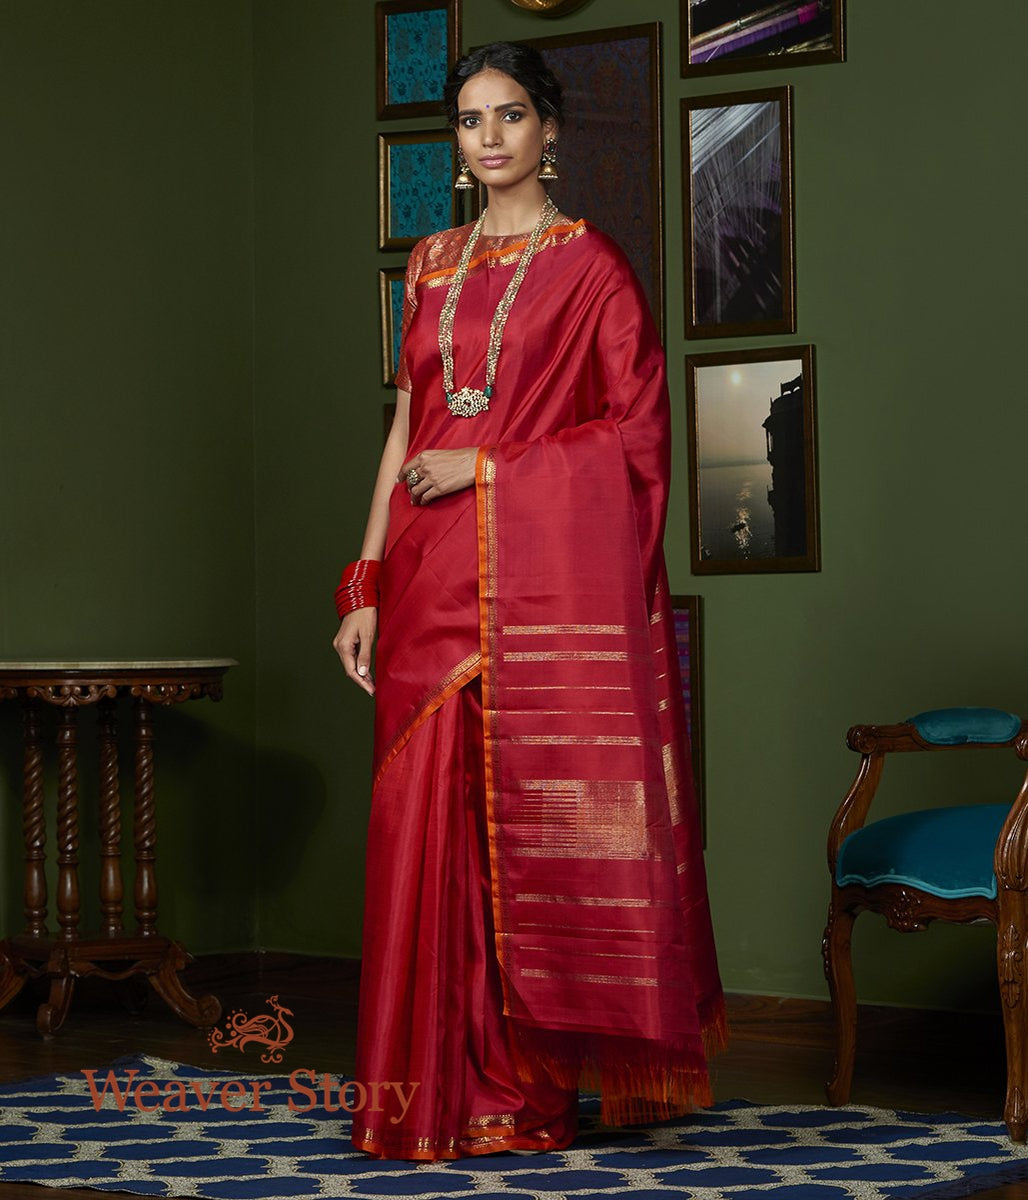 Handwoven Red Rani Kanjivaram Saree with Orange Selvedge